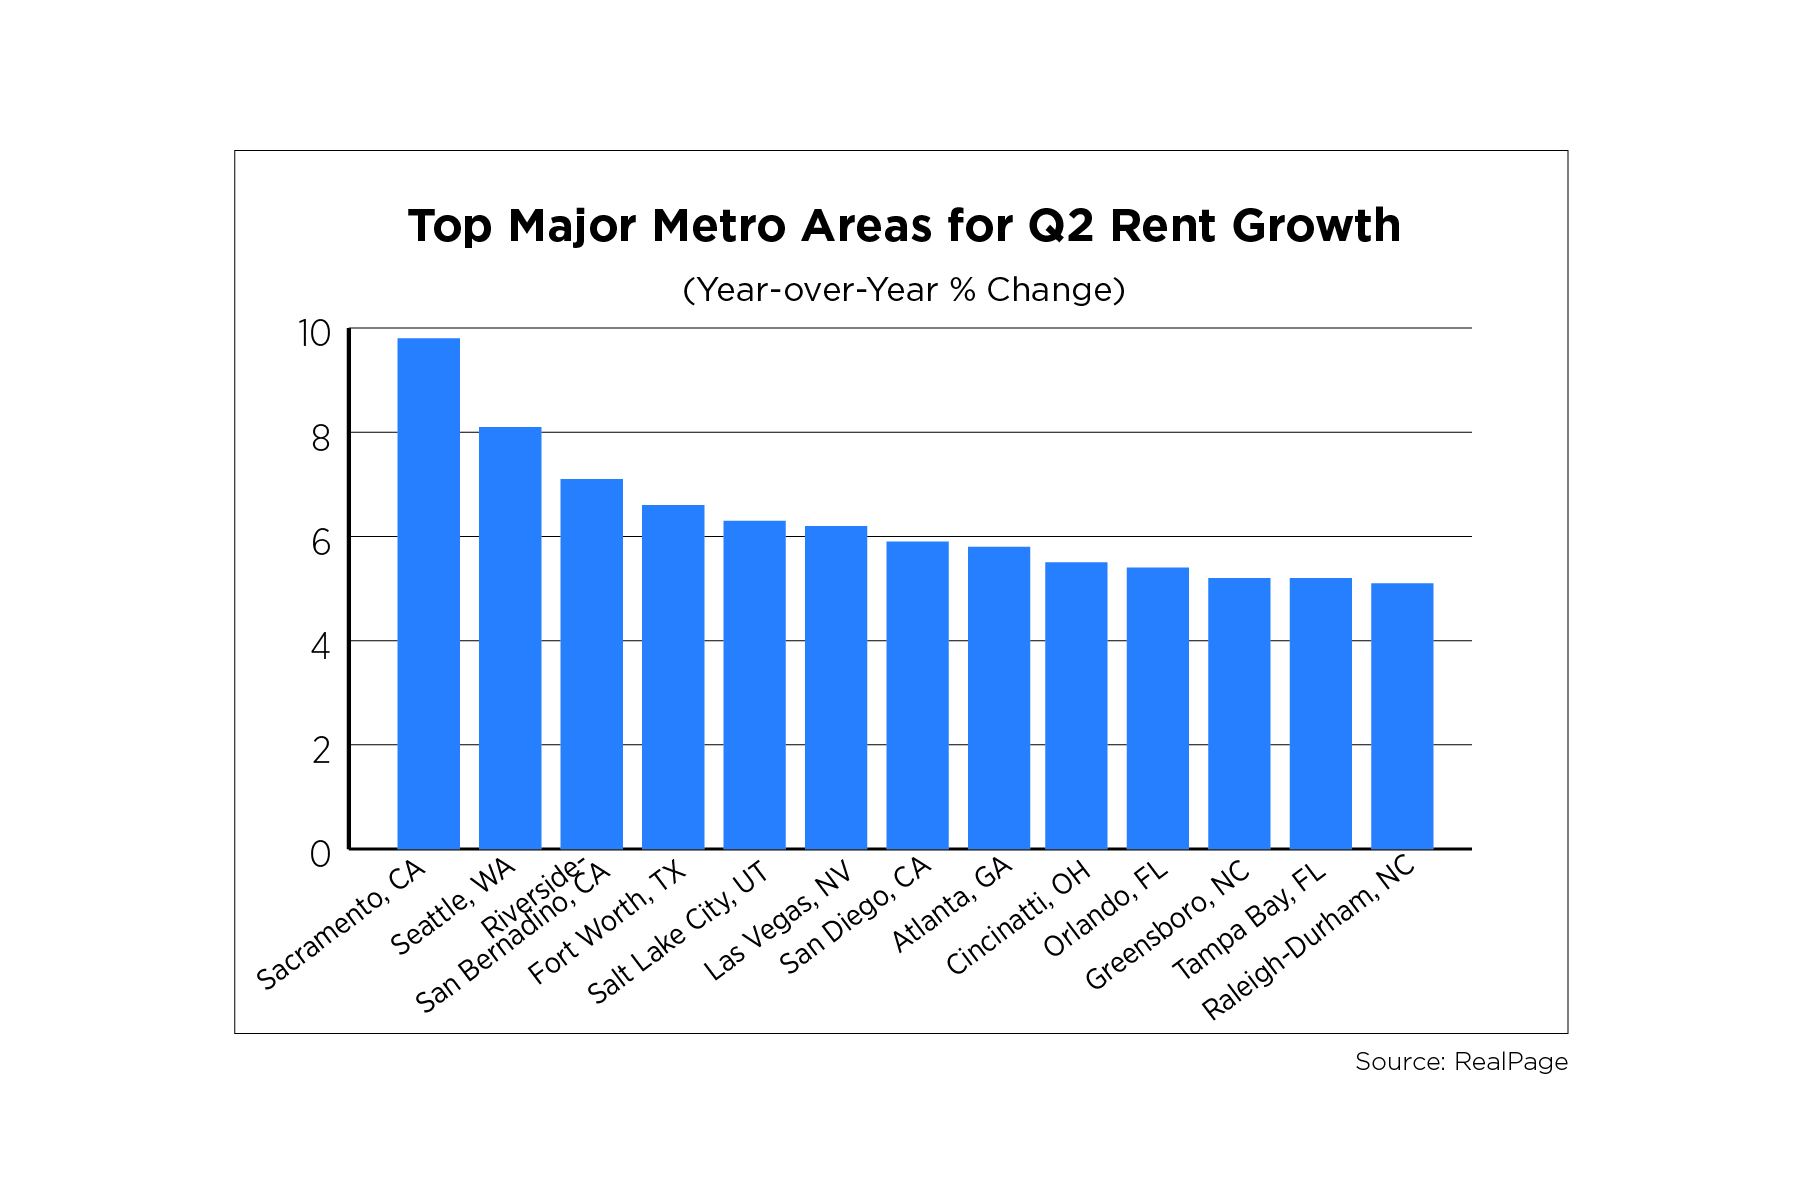 Top Major Metro Areas for Q2 Rent Growth